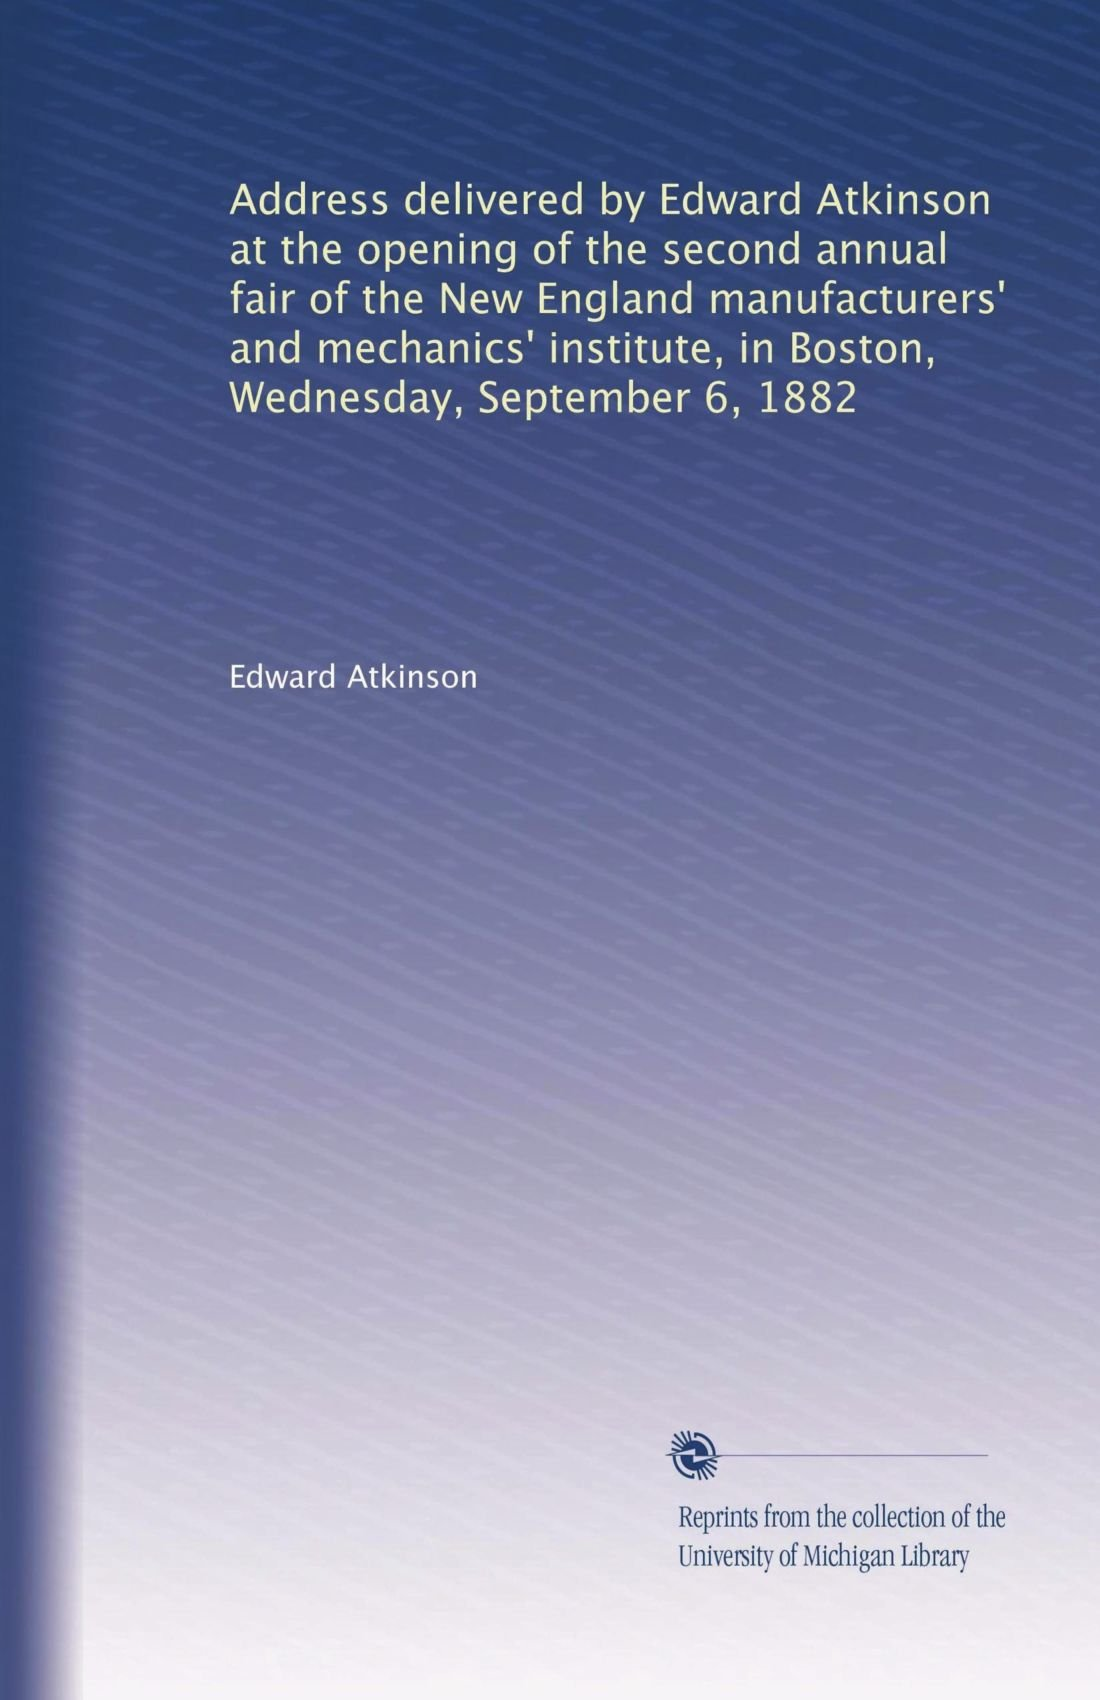 Download Address delivered by Edward Atkinson at the opening of the second annual fair of the New England manufacturers' and mechanics' institute, in Boston, Wednesday, September 6, 1882 ebook